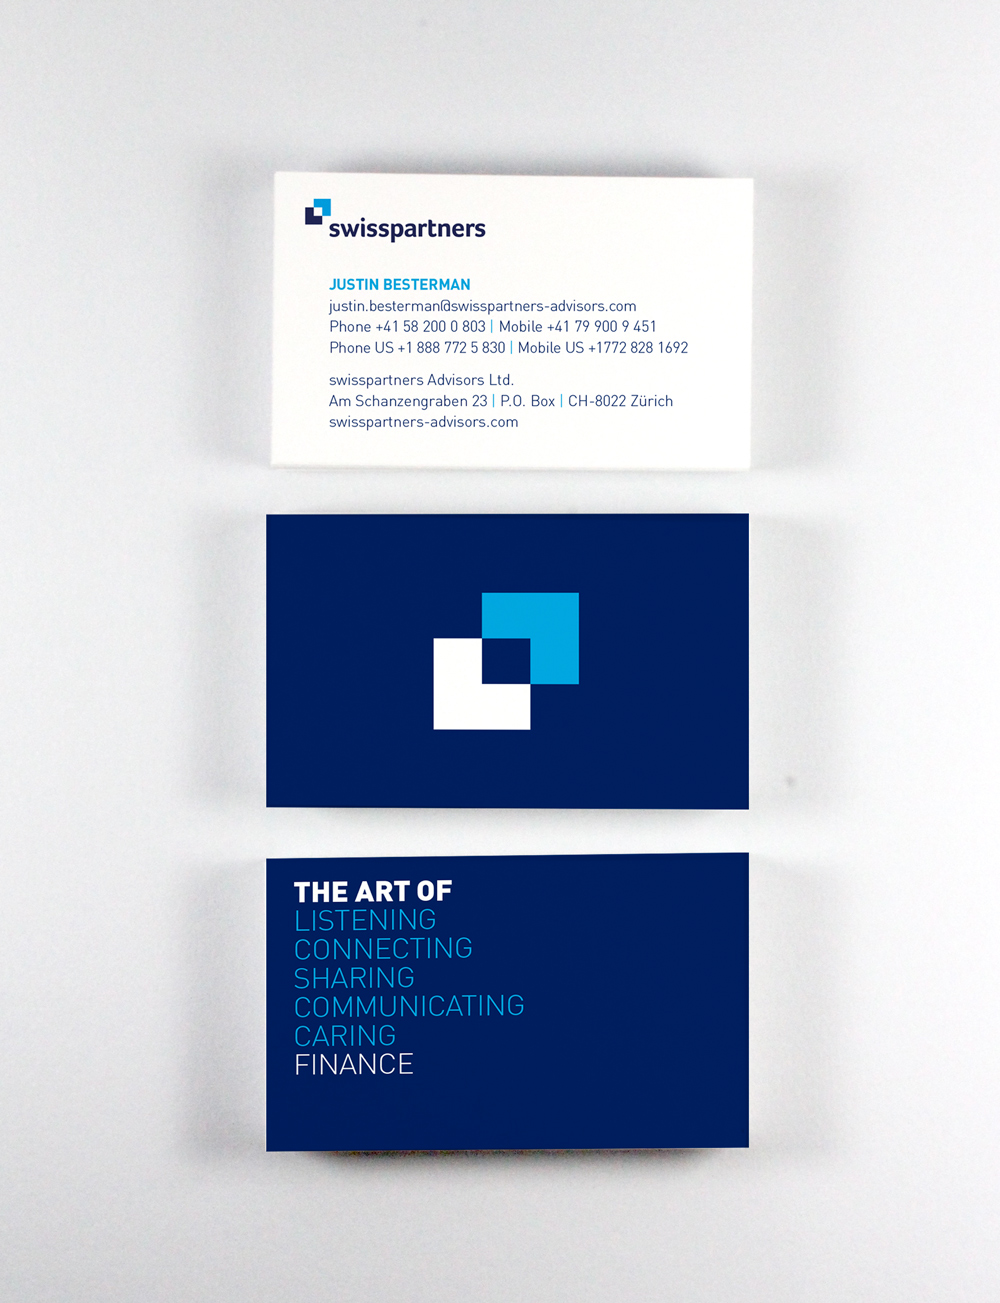 Swisspartners_business_cards